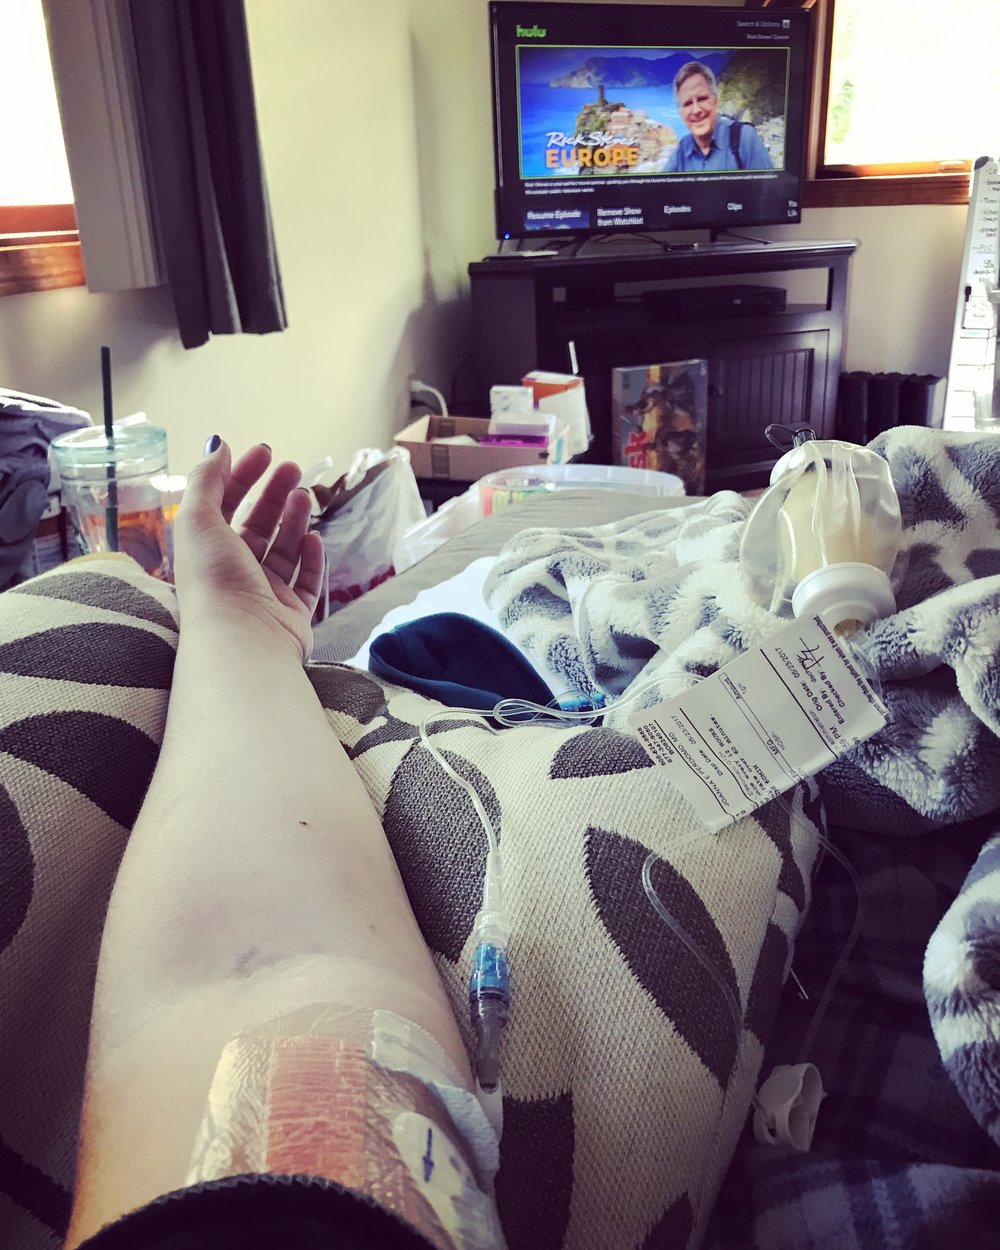 Just hanging out on the couch, getting my antibiotics infused, dreaming about traveling again someday, watching a little Rick Steves. #piccline #travelbug #itsgonnabeawhile #setbackssuck #somethingtoworktowards #travelgoals #traveldreams #oneleggedwoman